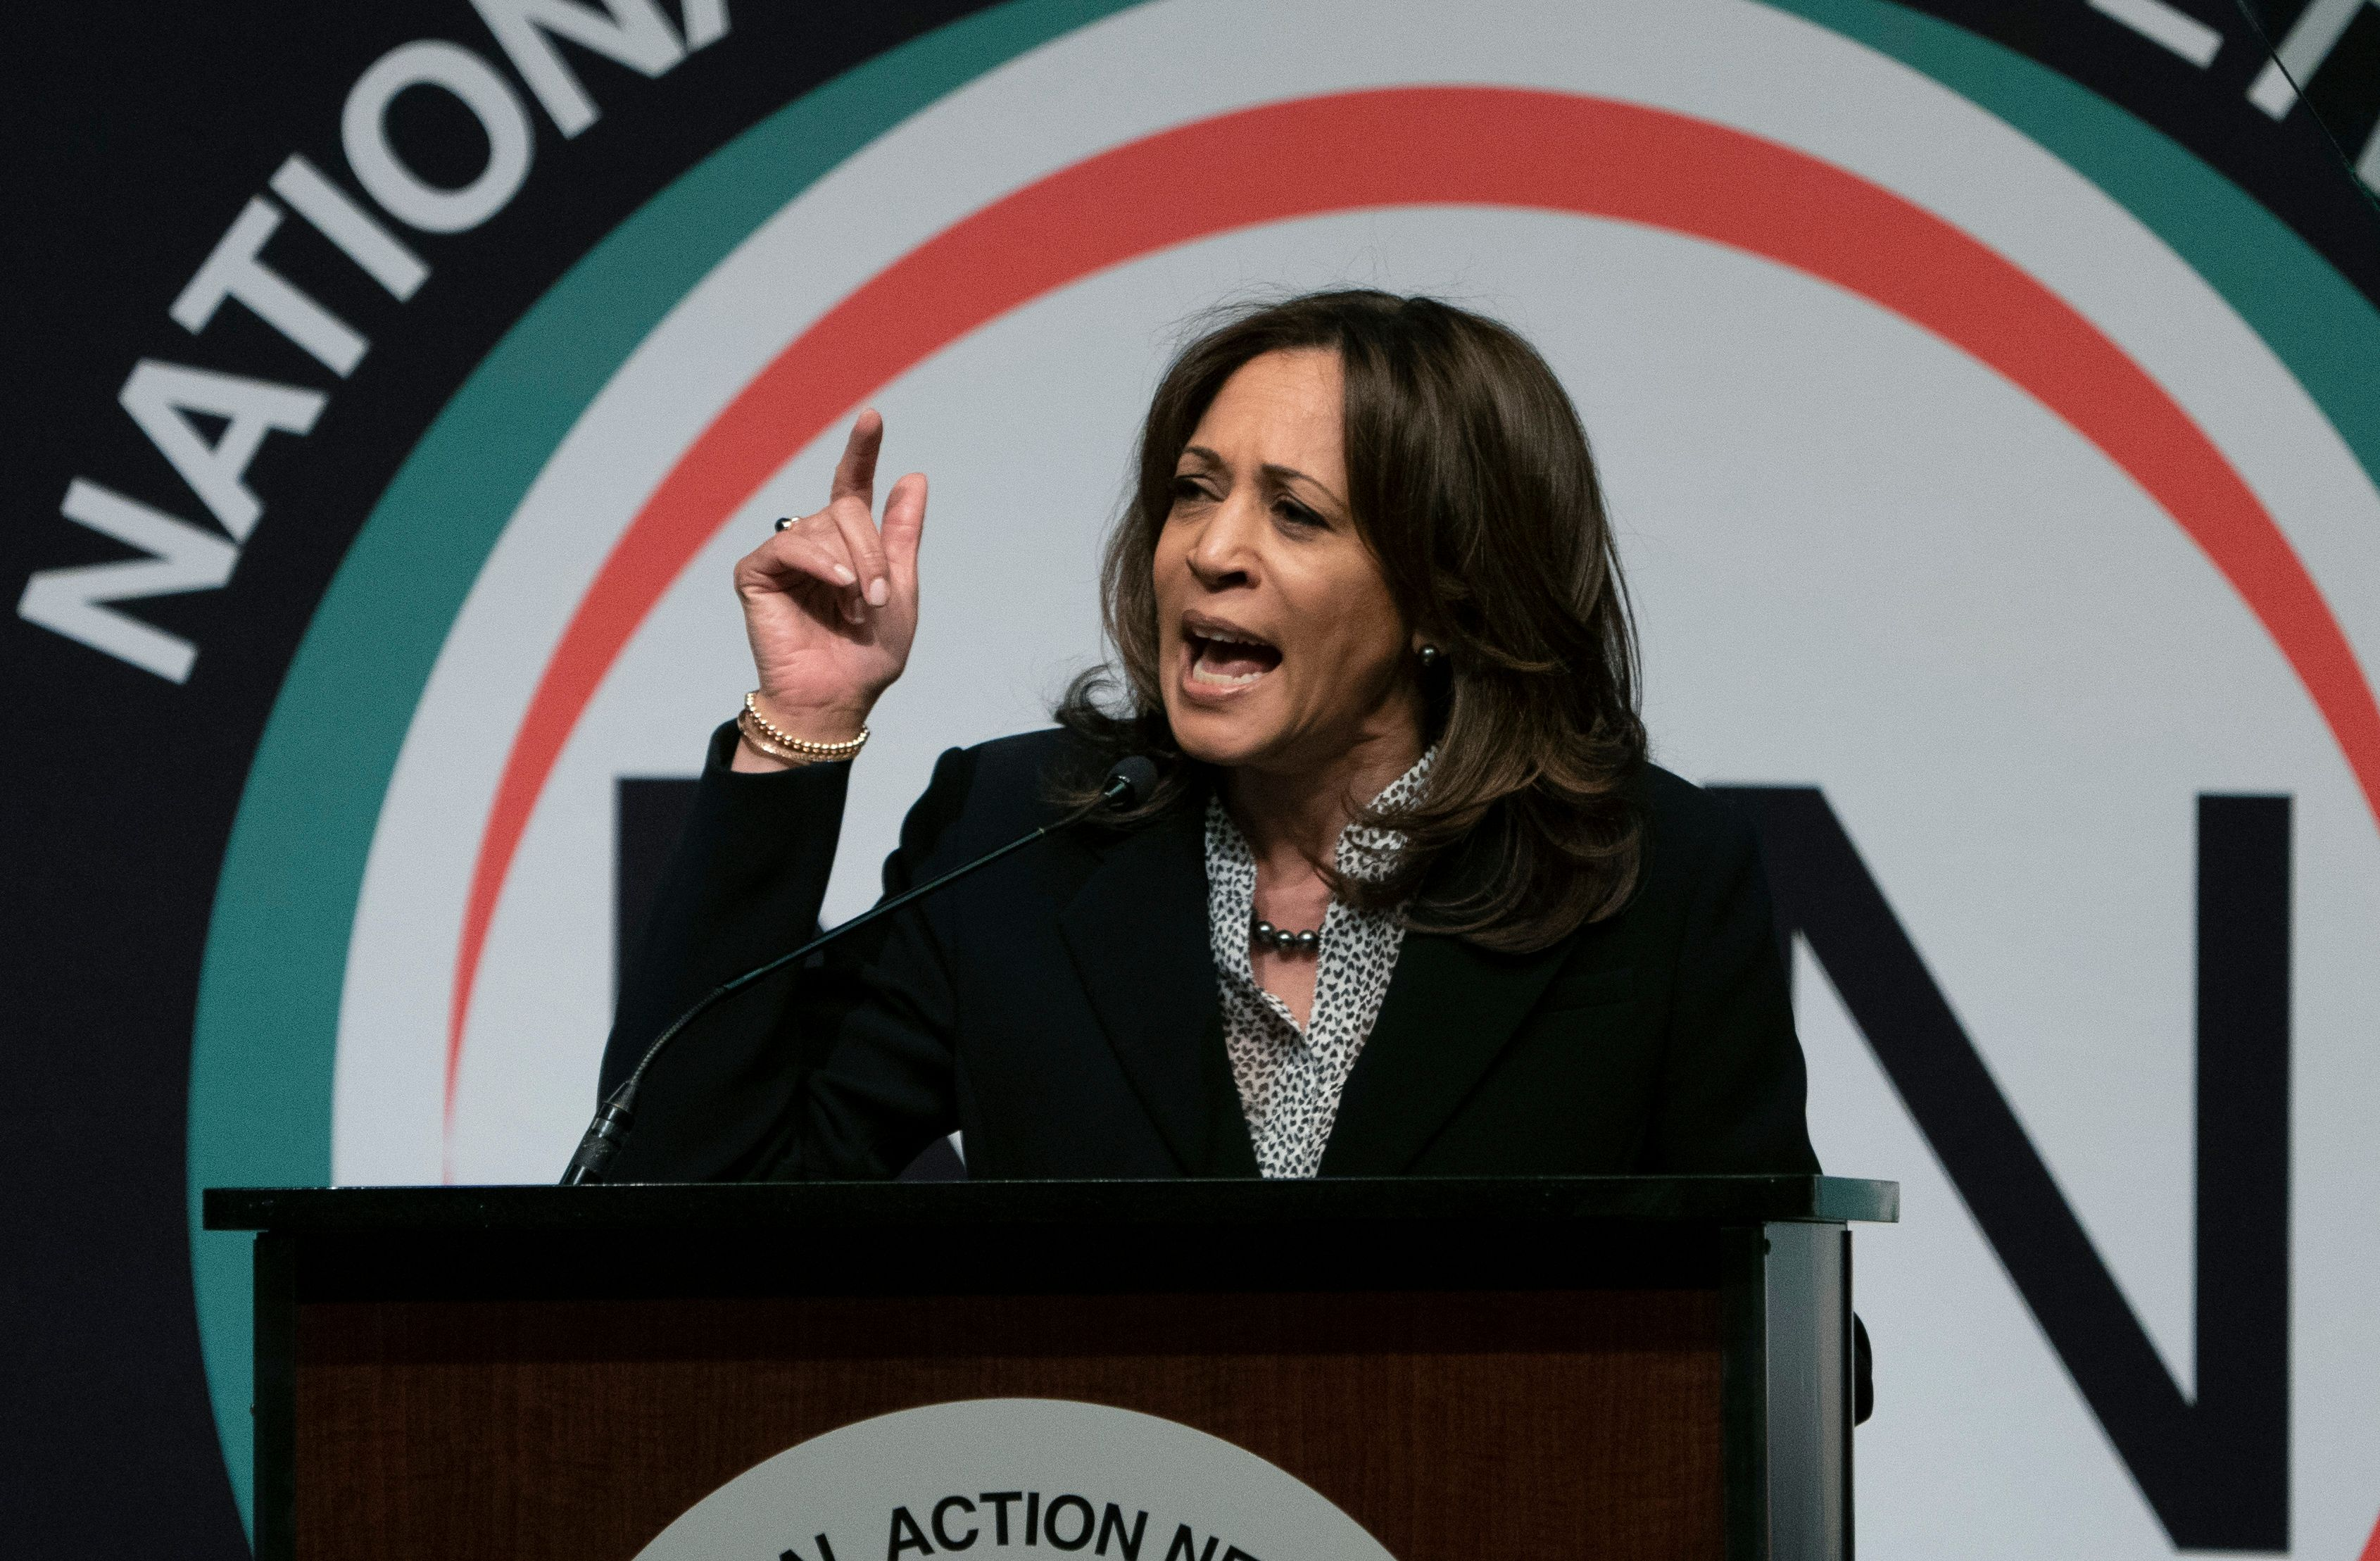 photo image Harris: If I'm Elected, DOJ Would Have 'No Choice' But To Prosecute Trump